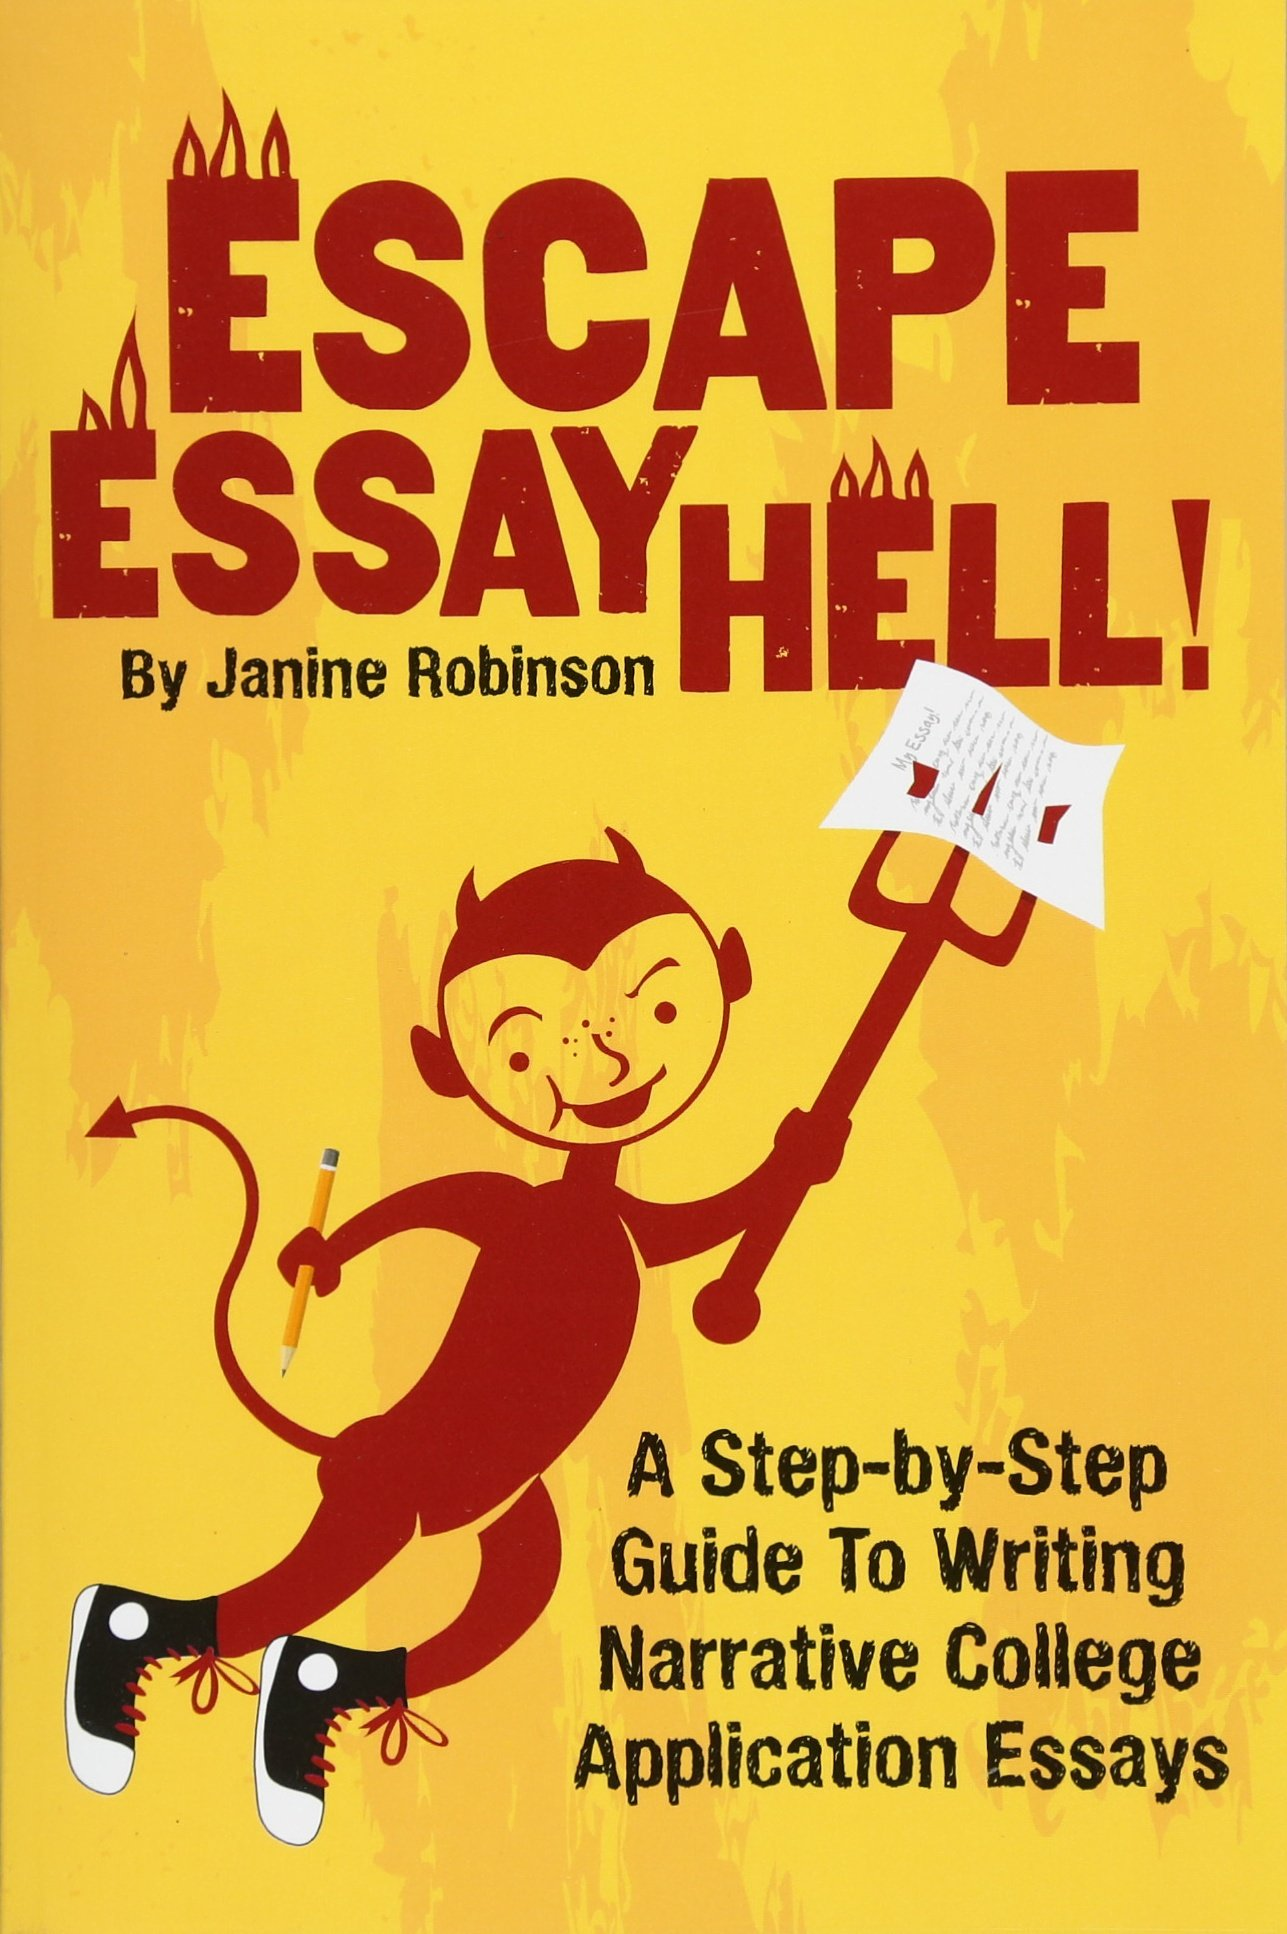 Escape Essay Hell A Stepbystep Guide To Writing Narrative  Escape Essay Hell A Stepbystep Guide To Writing Narrative College  Application Essays Janine W Robinson  Amazoncom Books Essay On Photosynthesis also How To Write Science Essay  Business Plan Writer In Houston